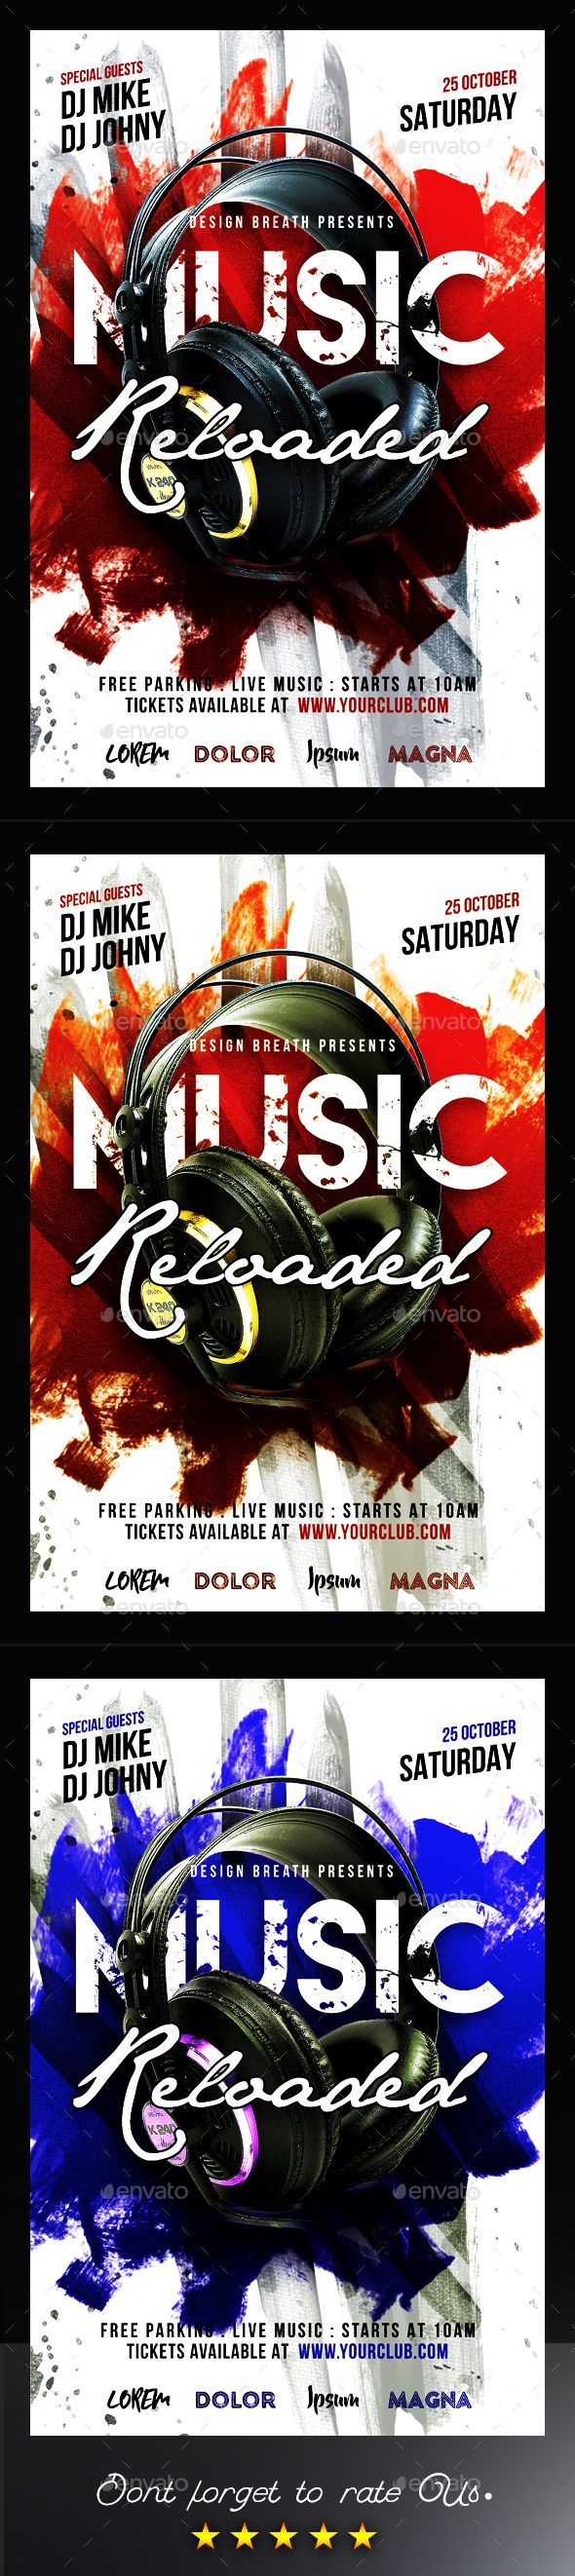 Music Reloaded Flyer — Photoshop PSD #art #house dj • Download ➝ https://graphicriver.net/item/music-reloaded-flyer/19688485?ref=pxcr